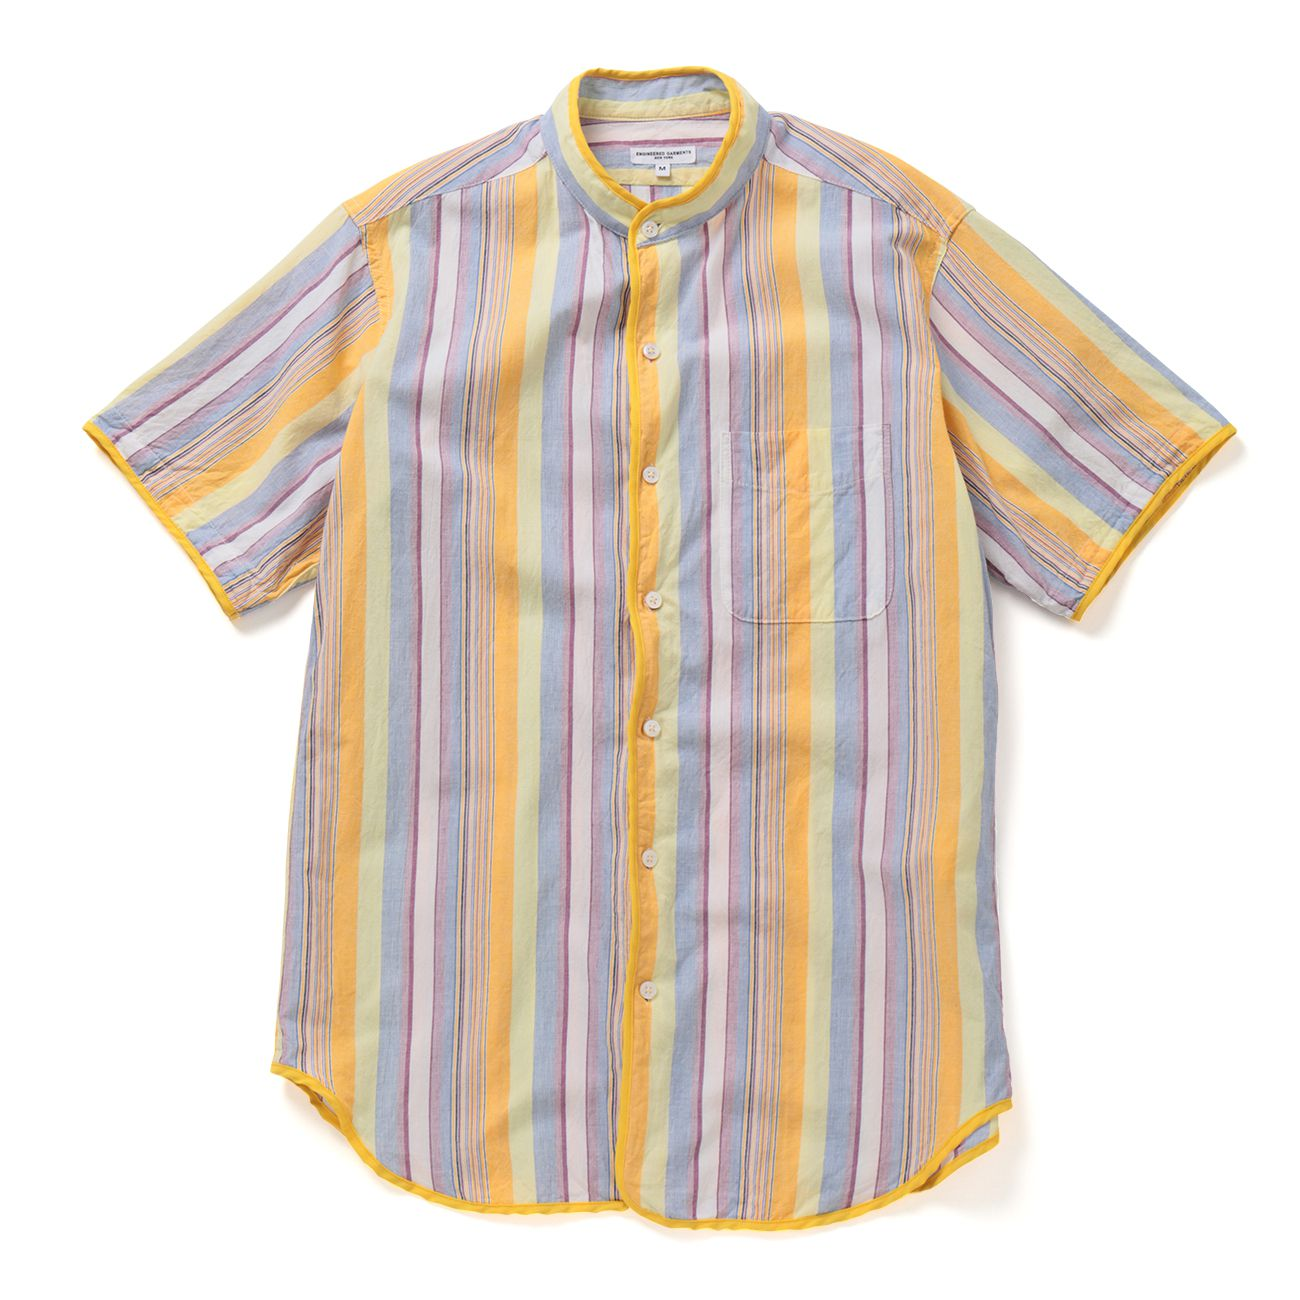 ENGINEERED GARMENTS-Copley Shirt - Multi Color St. - Yellow